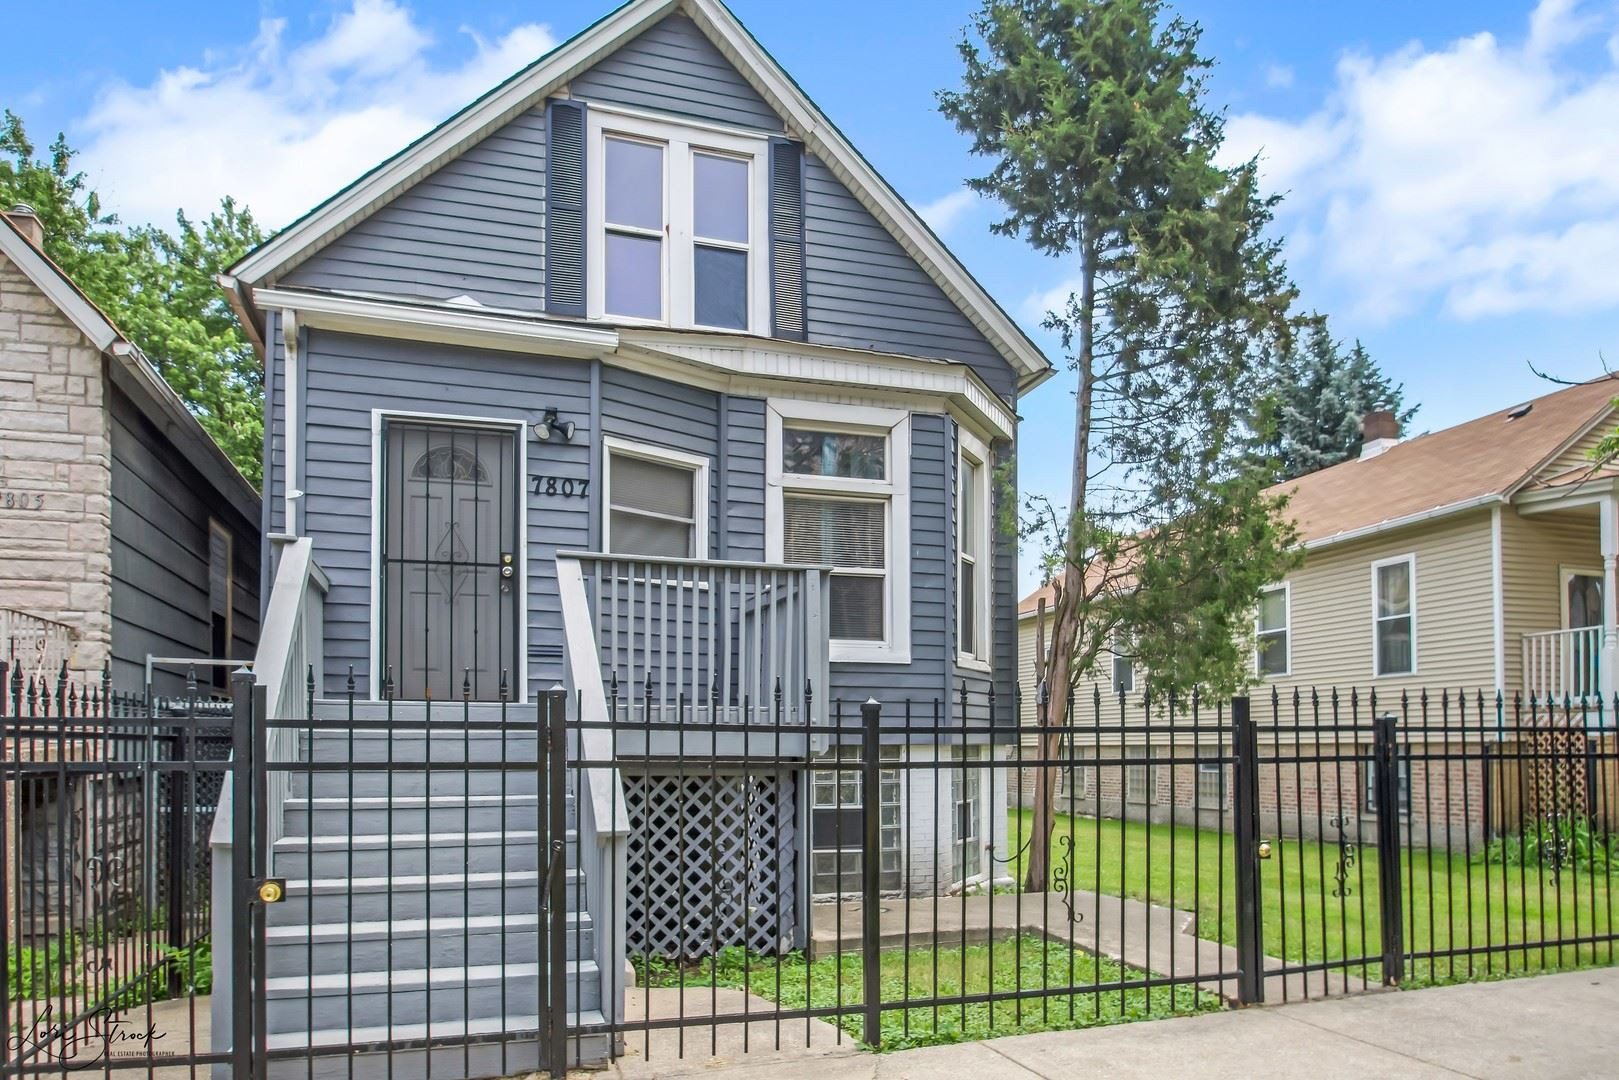 7807 S Dobson Avenue, Chicago, IL 60619 - #: 10758426